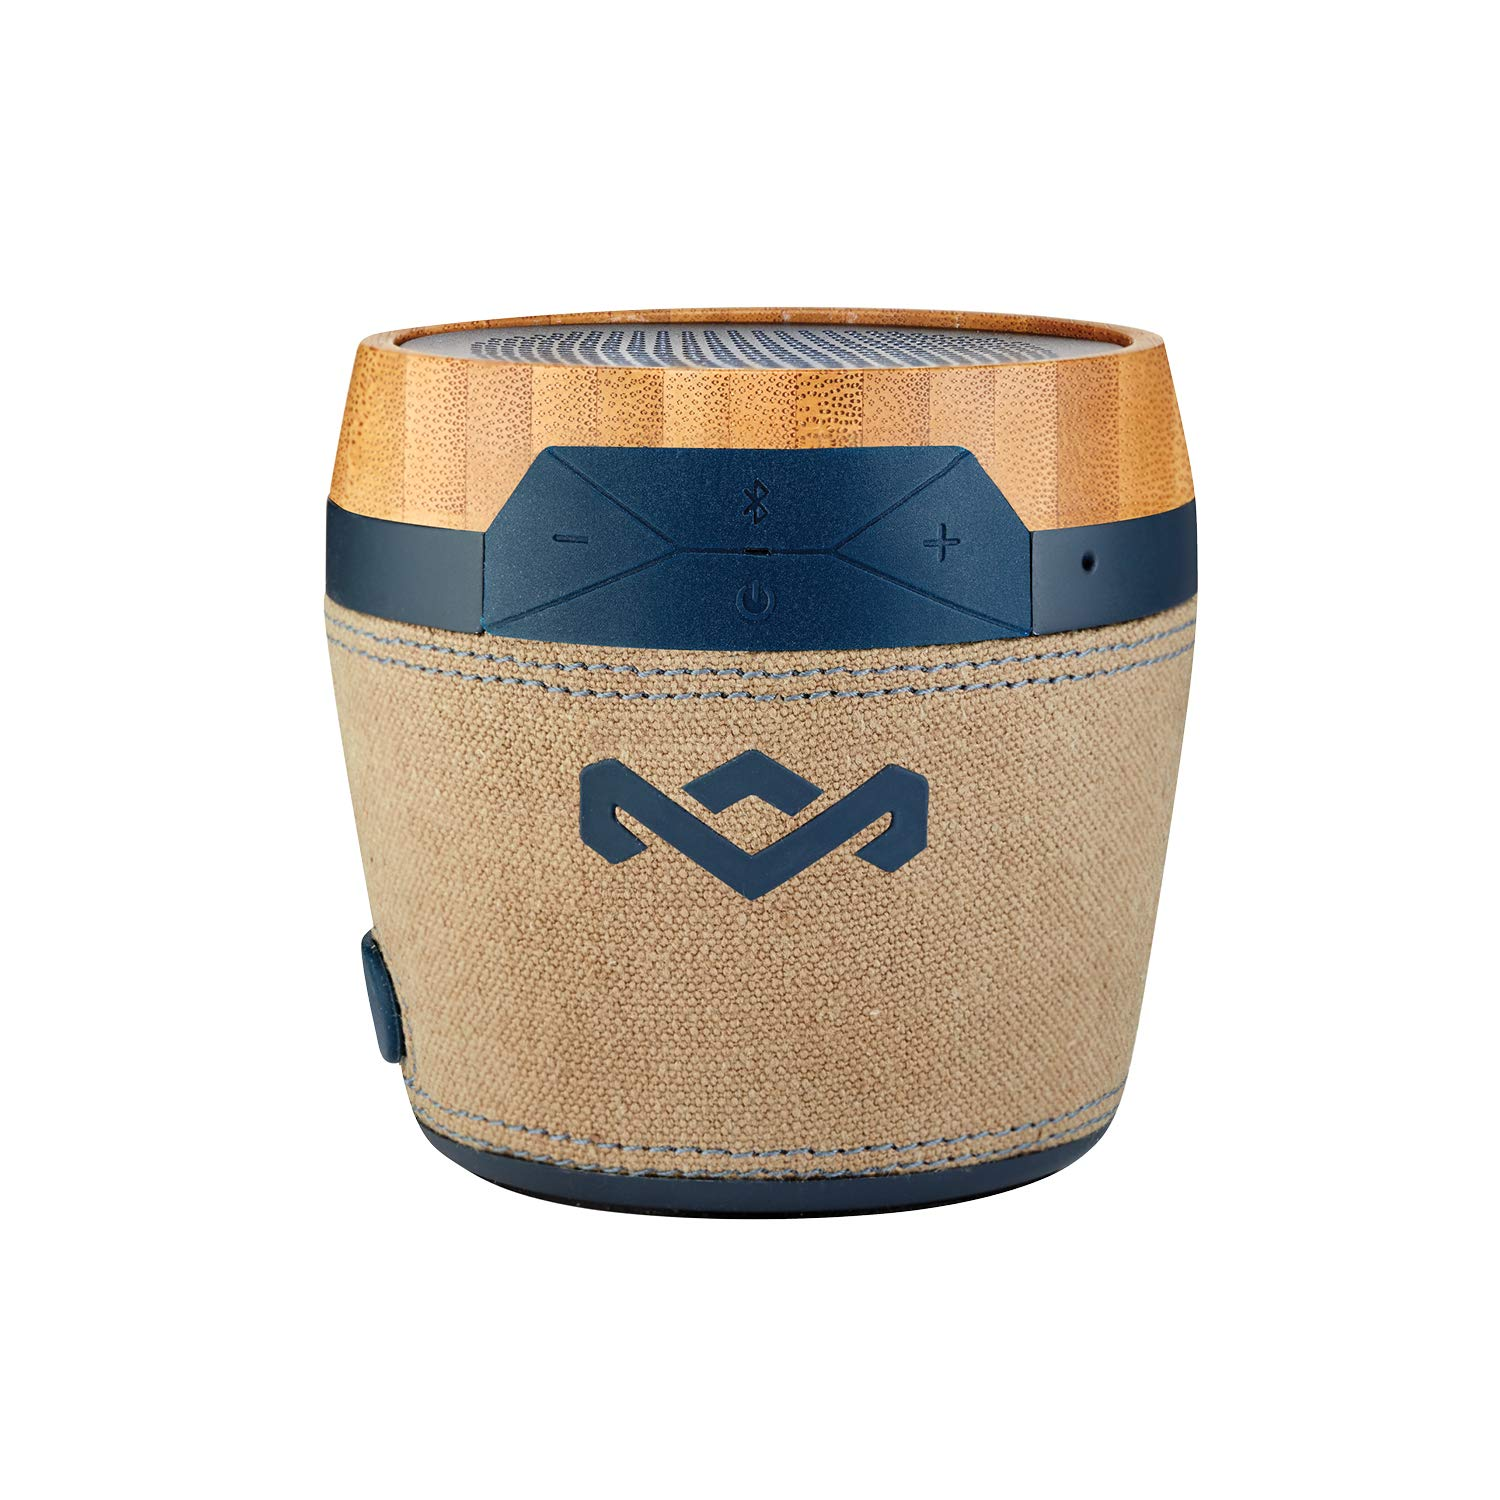 House of Marley Chant Mini - Waterproof Portable Wireless...